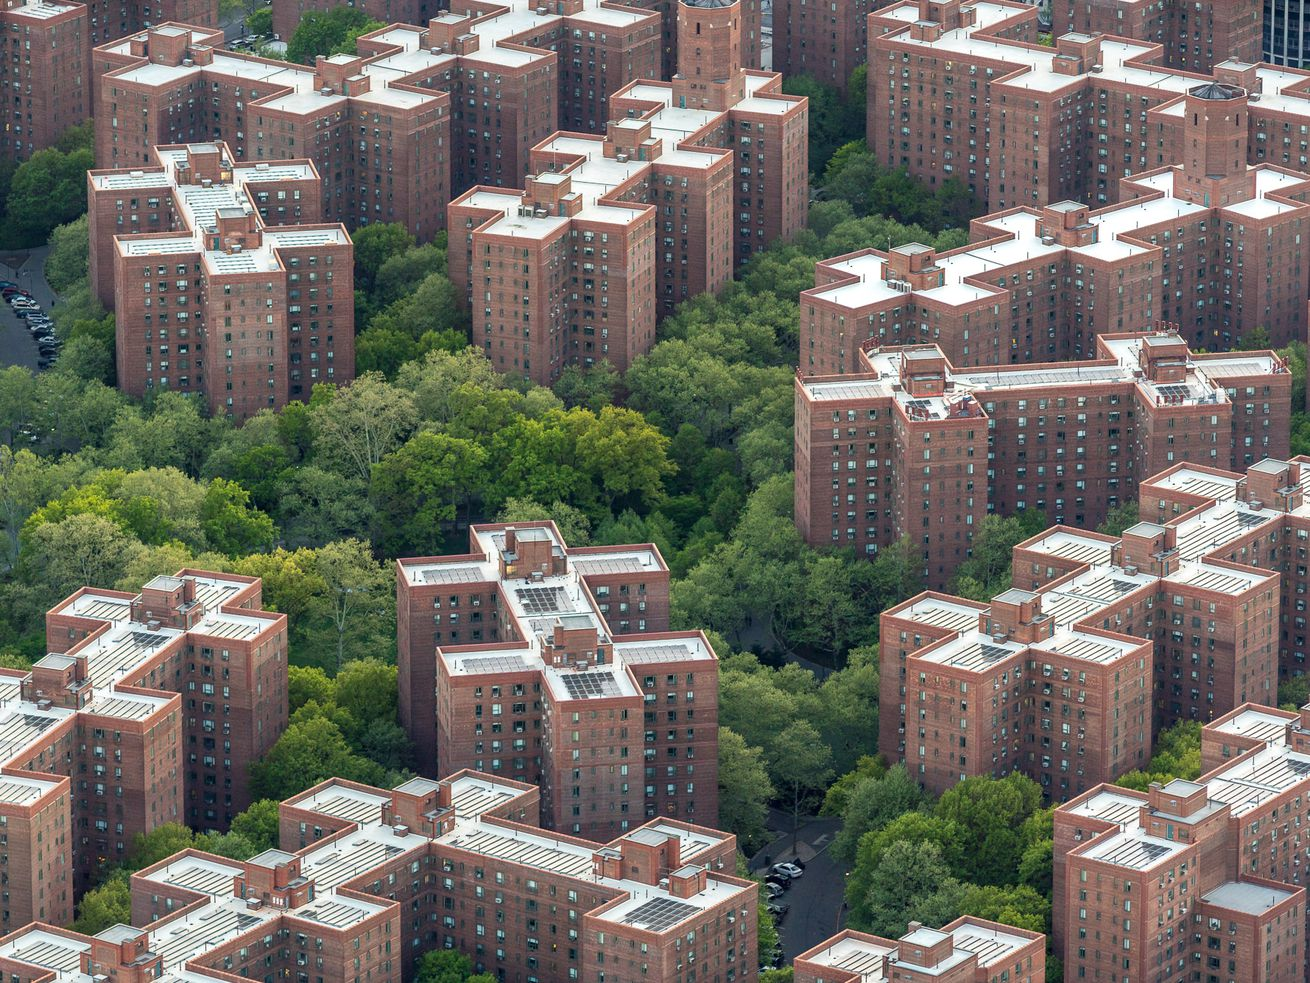 The Stuyvesant Town complex still has thousands of rent-stabilized apartments.